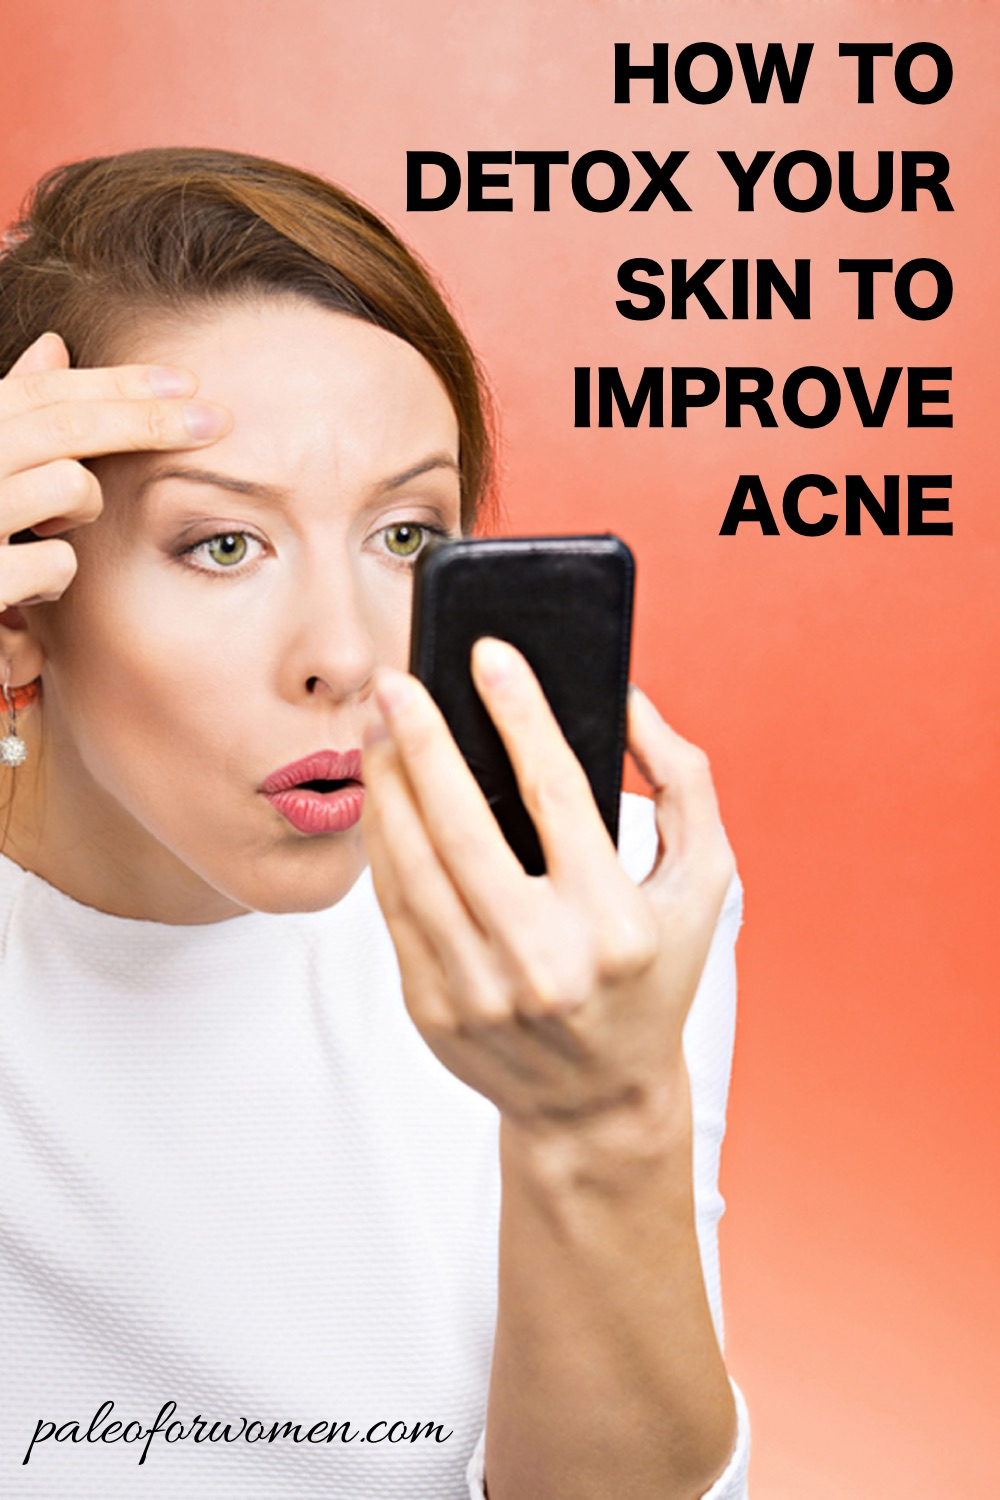 How to Detox Your Skin to Improve Acne - Paleo for Women